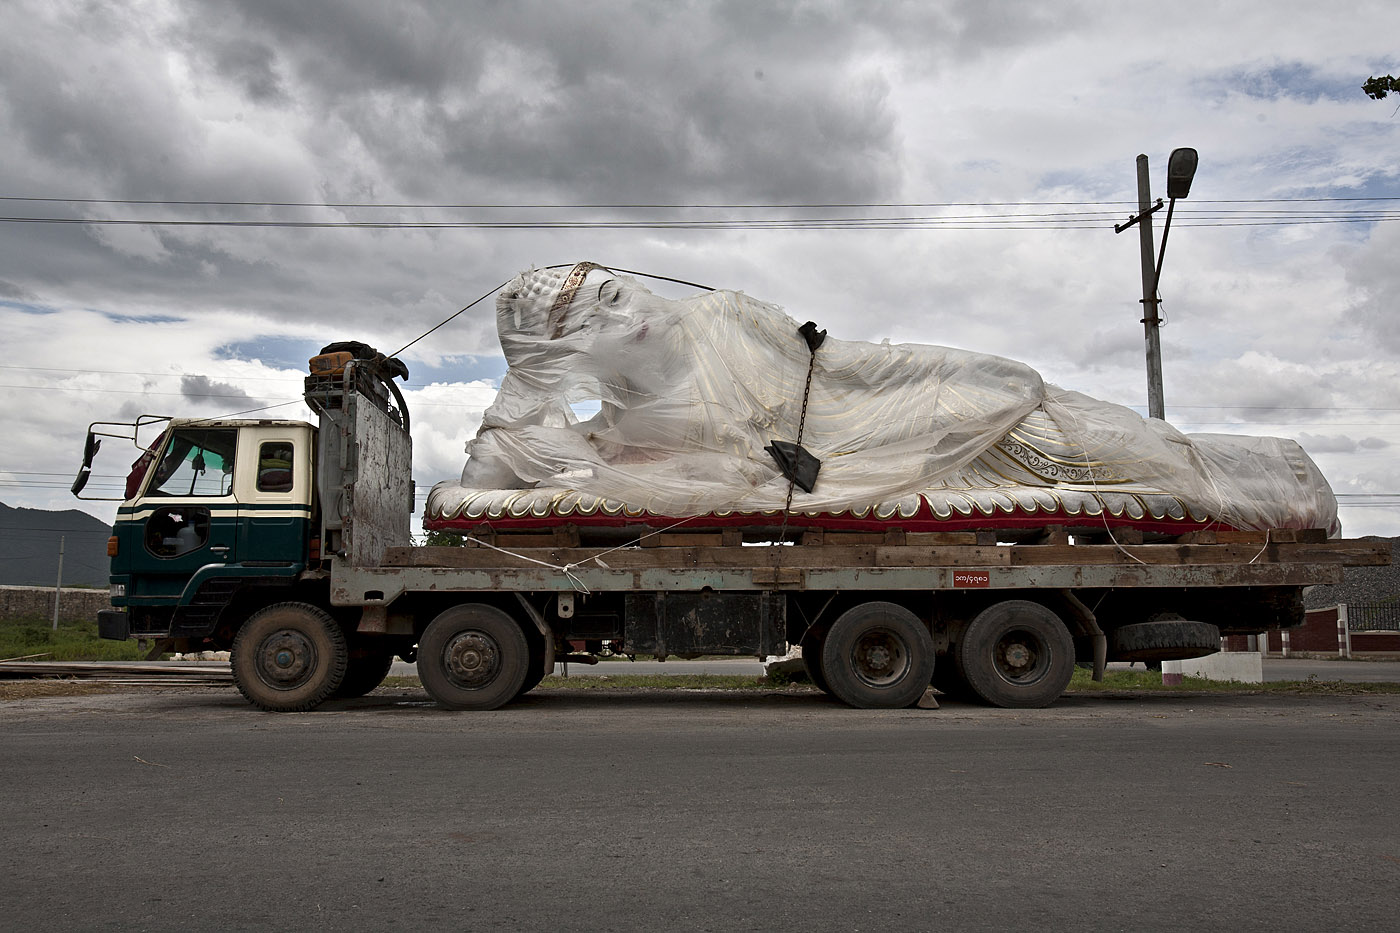 Marble Buddha on Flatbed, road to Hsipaw.